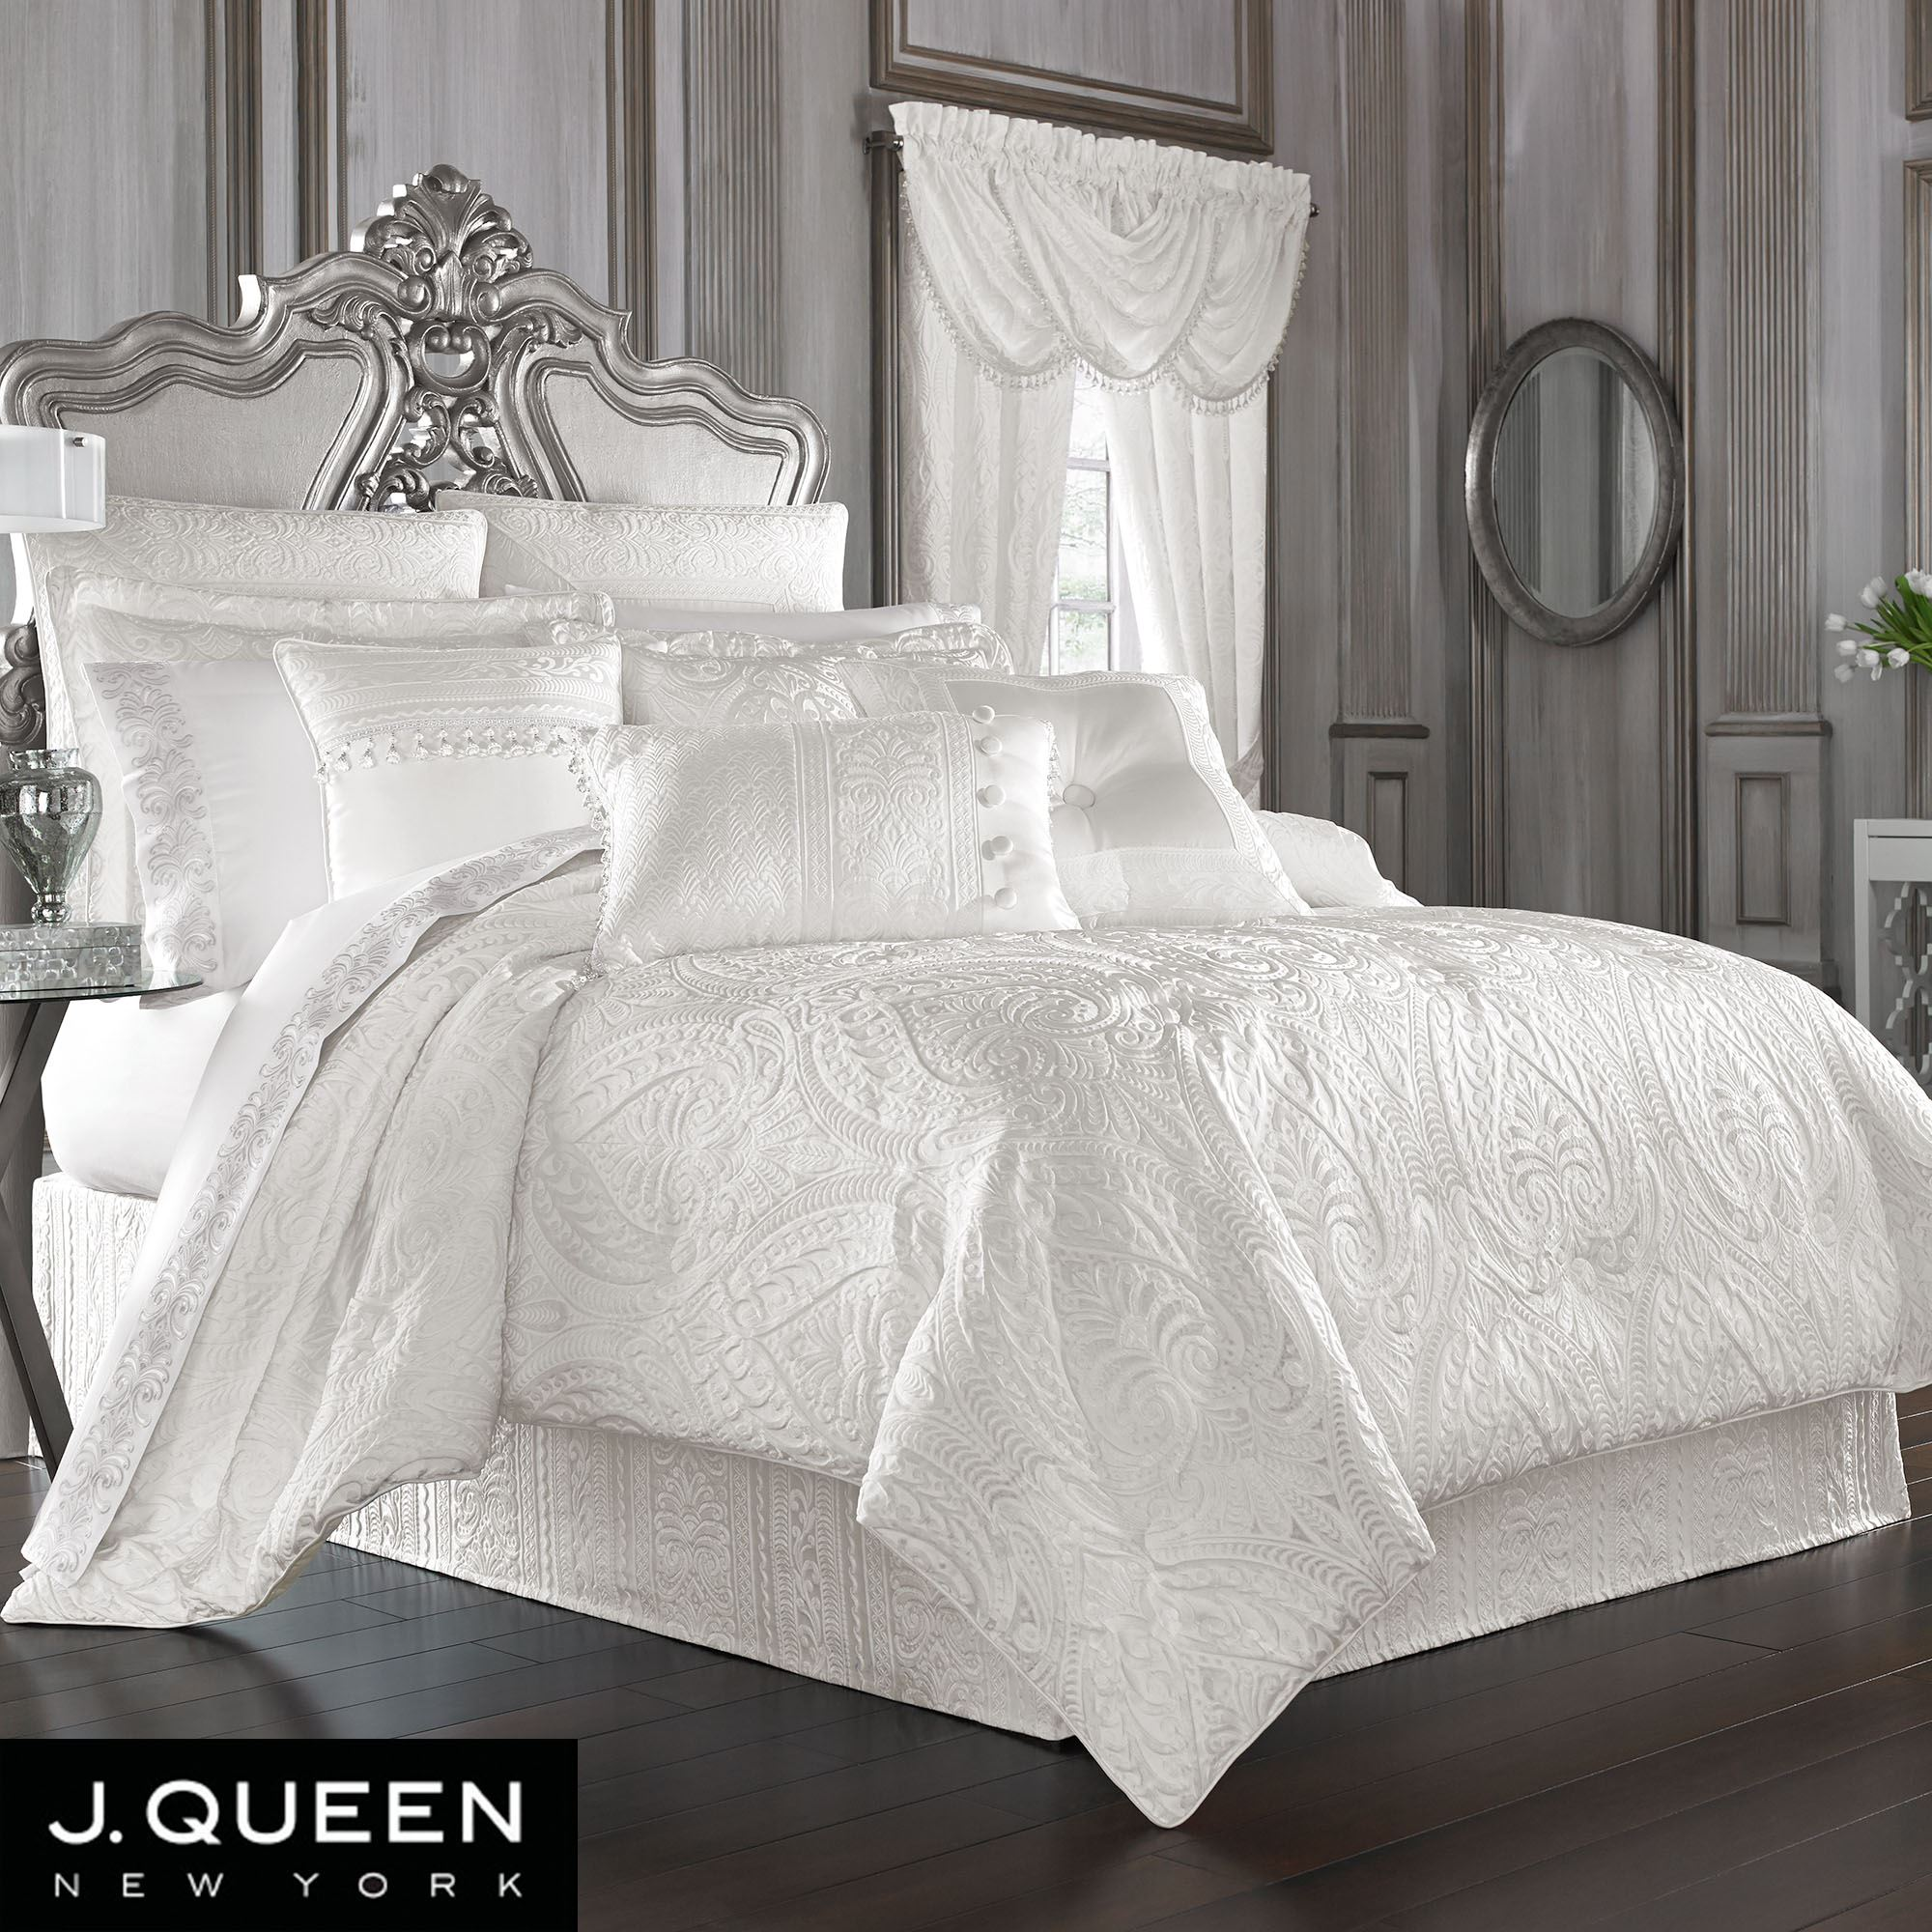 Picture of: J Queen White Bianco Comforter Set Bianco Is A Traditional And Sophisticated Woven Damask This Spec Luxury Comforter Sets Comforter Sets Bed Linens Luxury